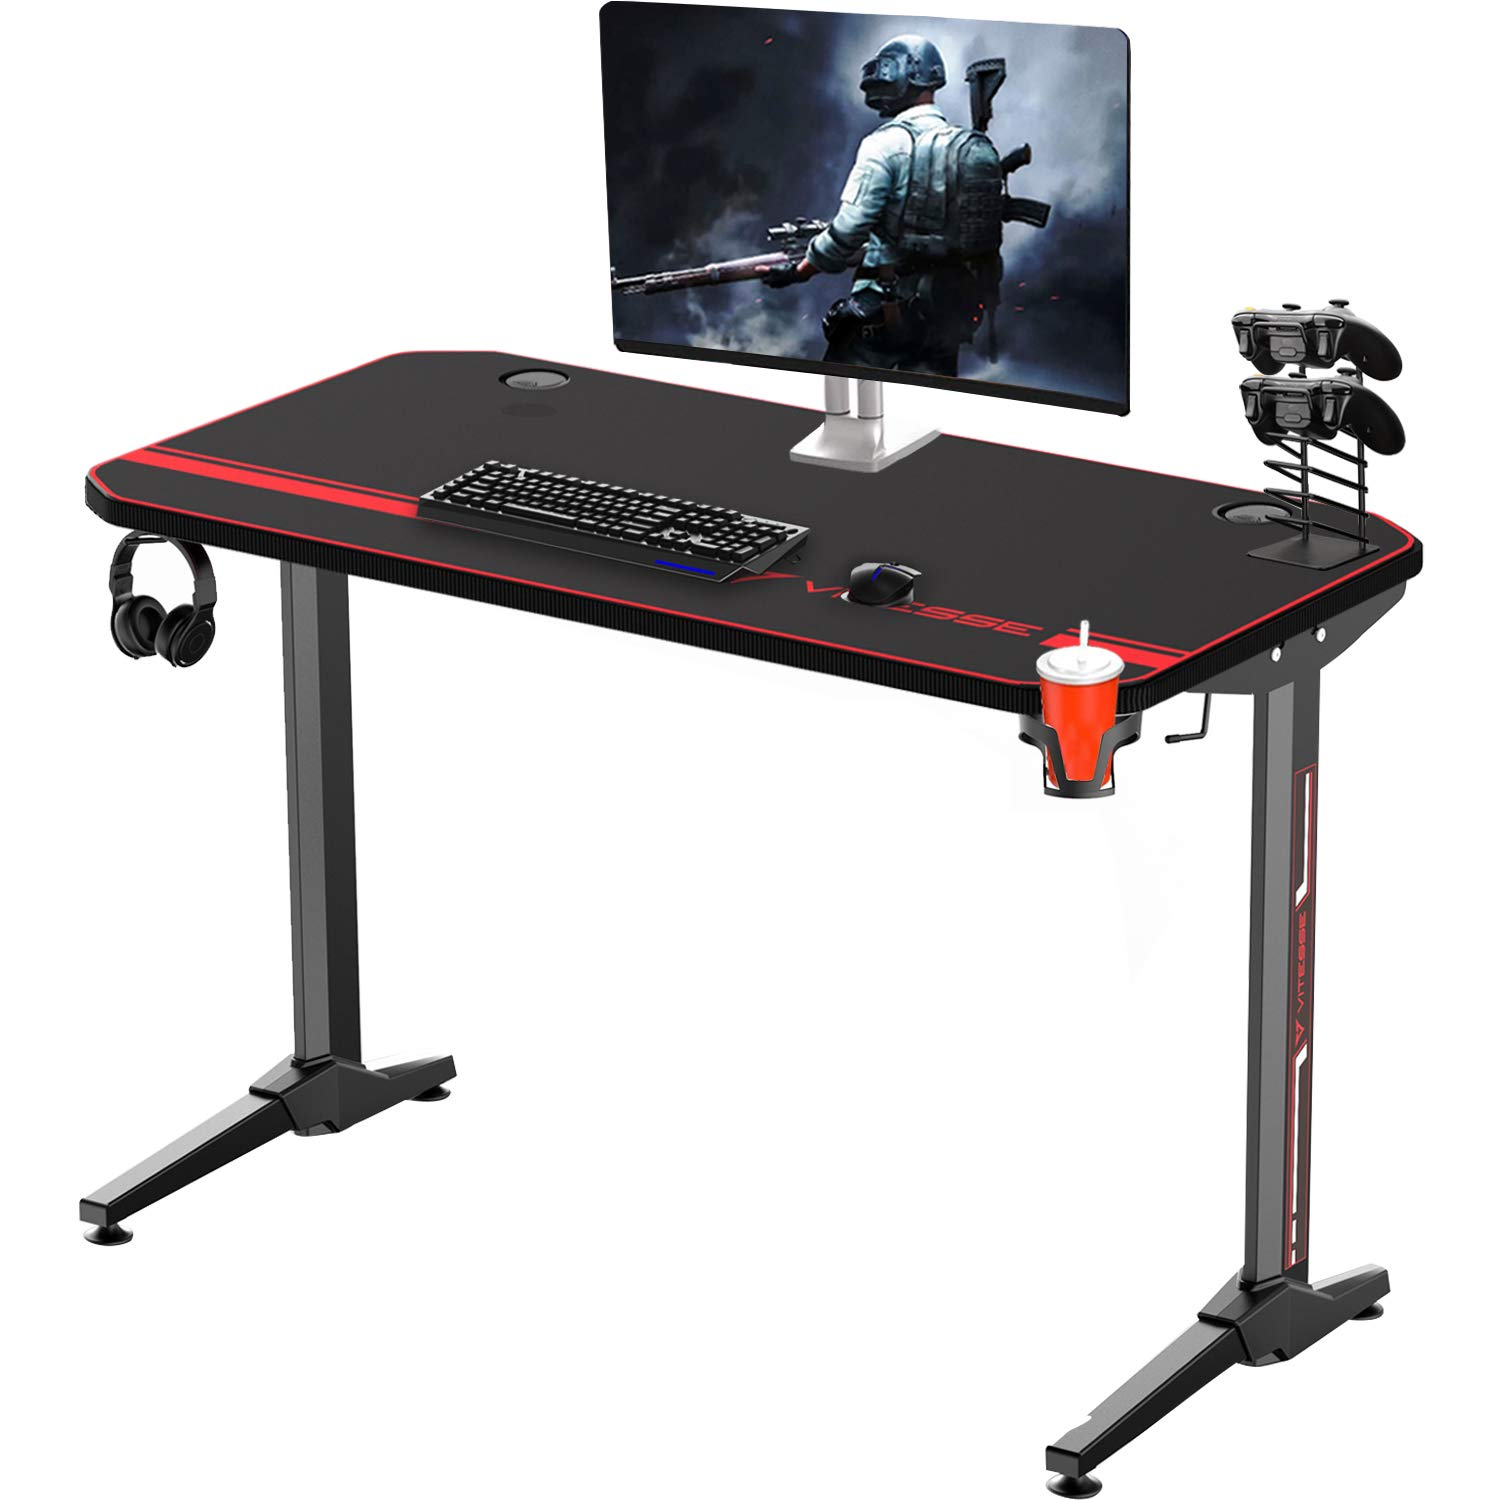 Vitesse 47 inches Gaming Desk Racing Style Computer Table with Free Mouse pad, T-Shaped Professional Gamer Workstation PC Office Desk with Cup Holder & Headphone Hook by Waleaf (Image #1)